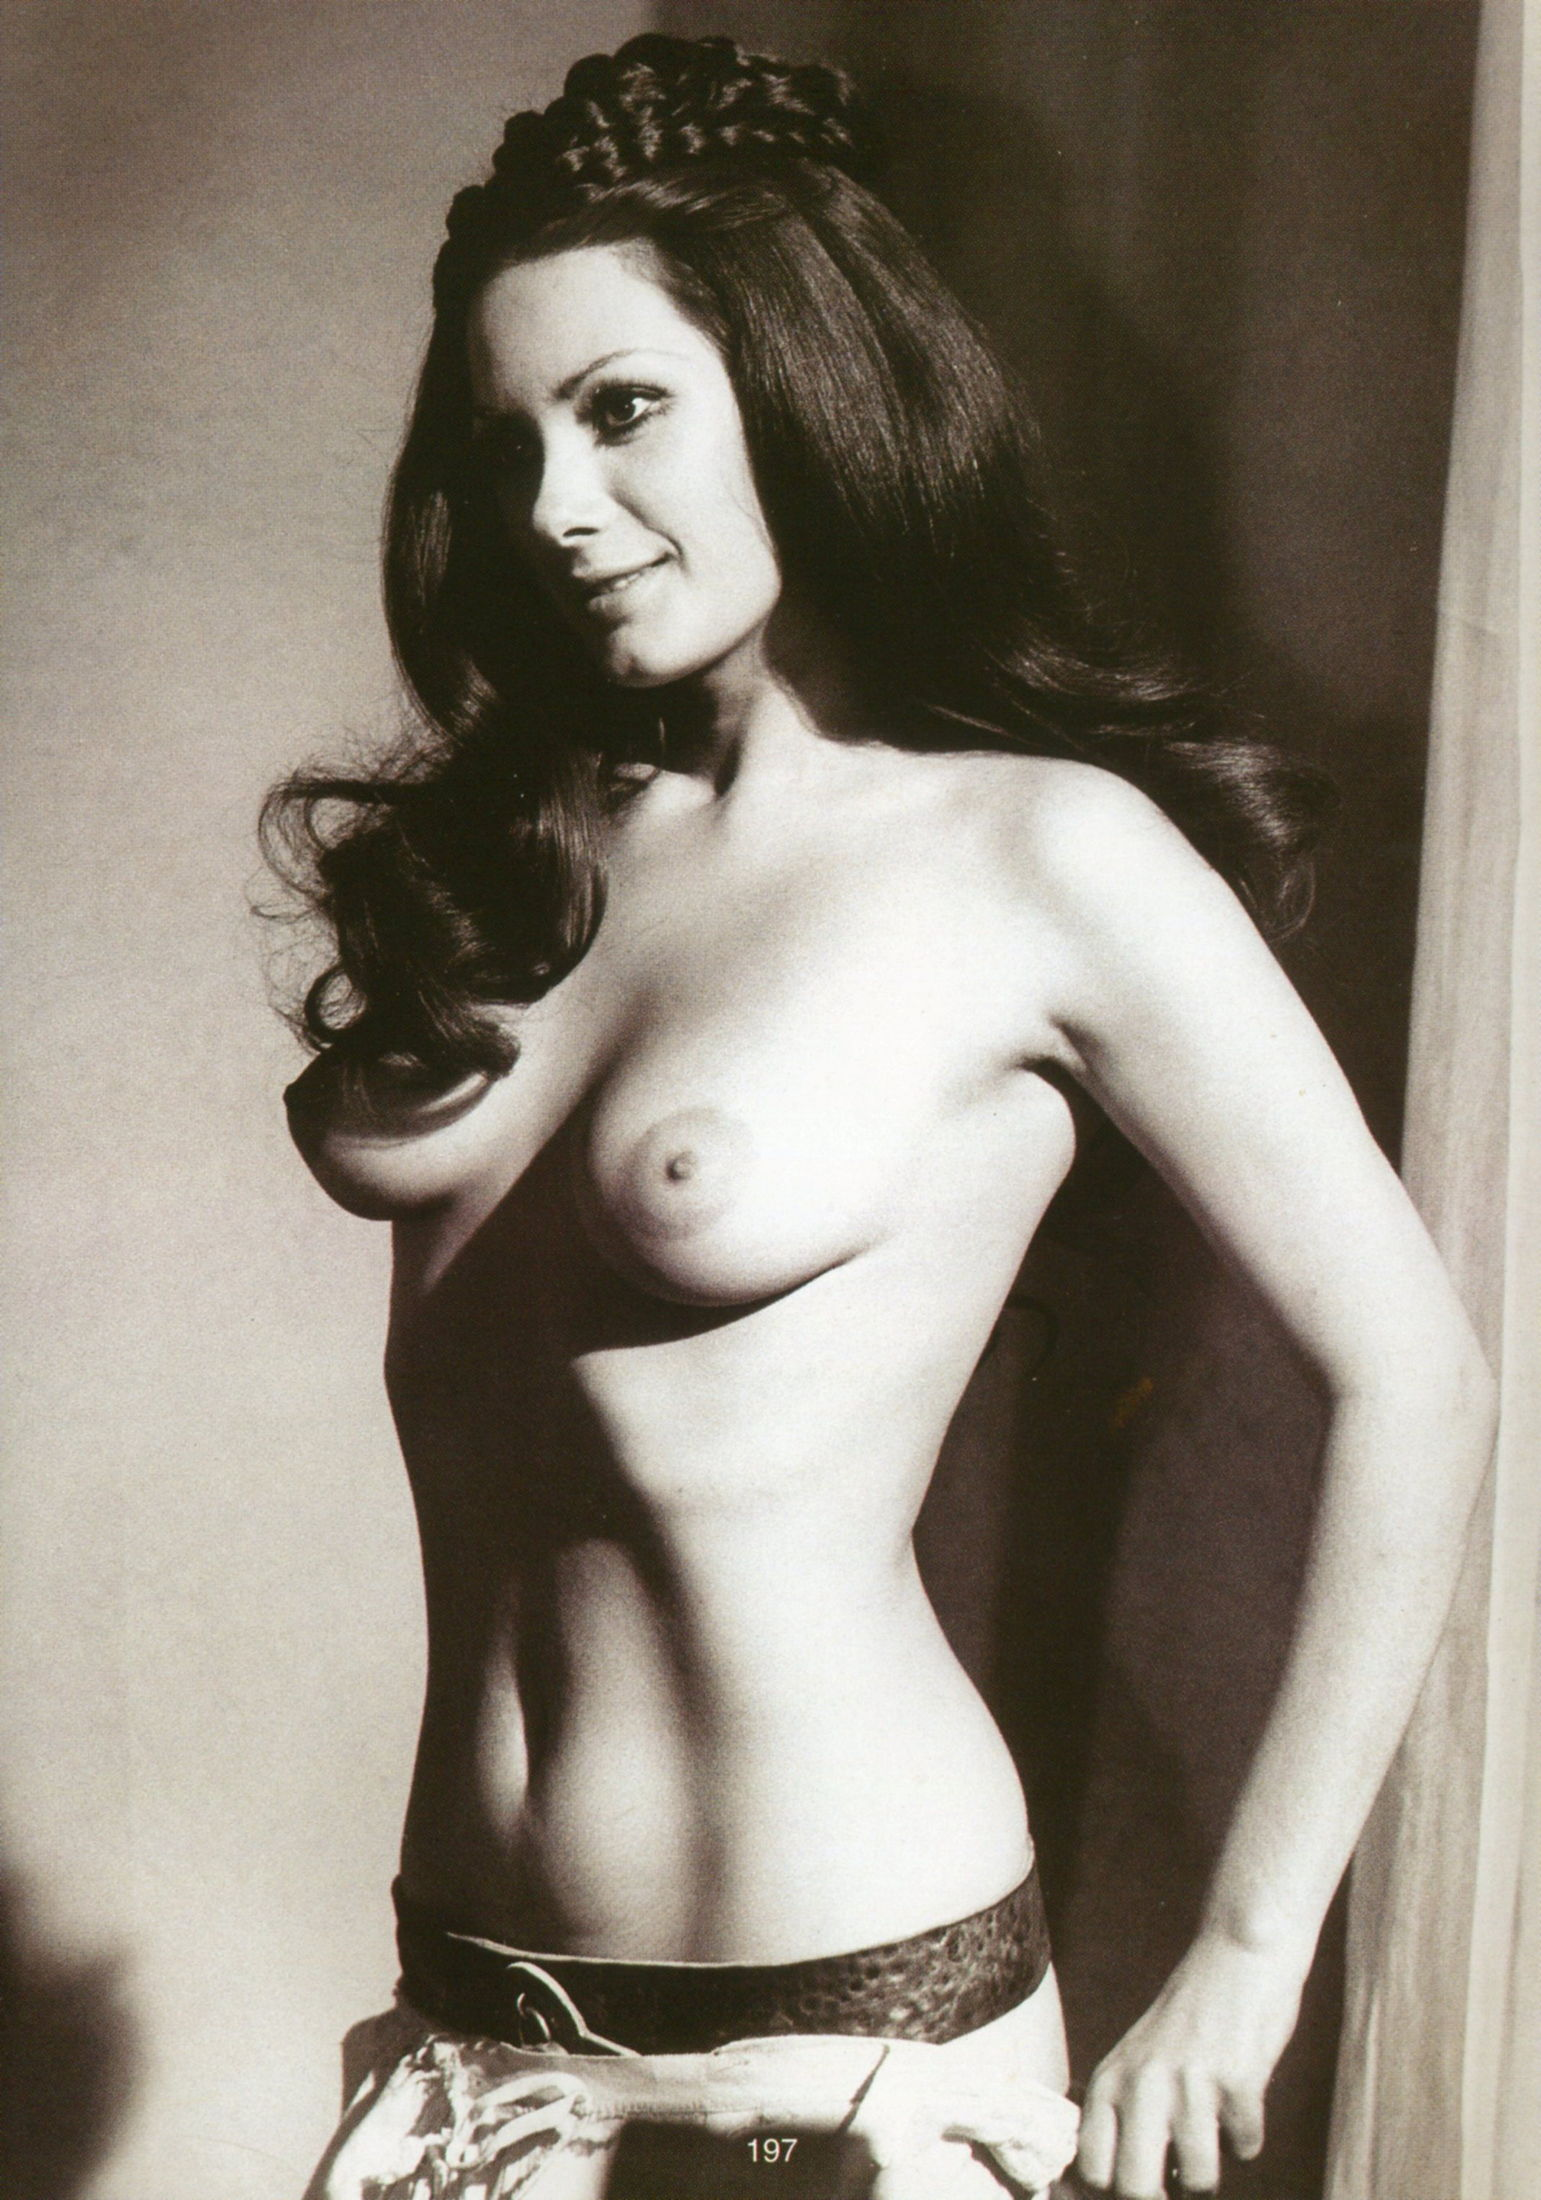 Piper laurie naked, by lesbian lesbian life lifestyles like look their writings